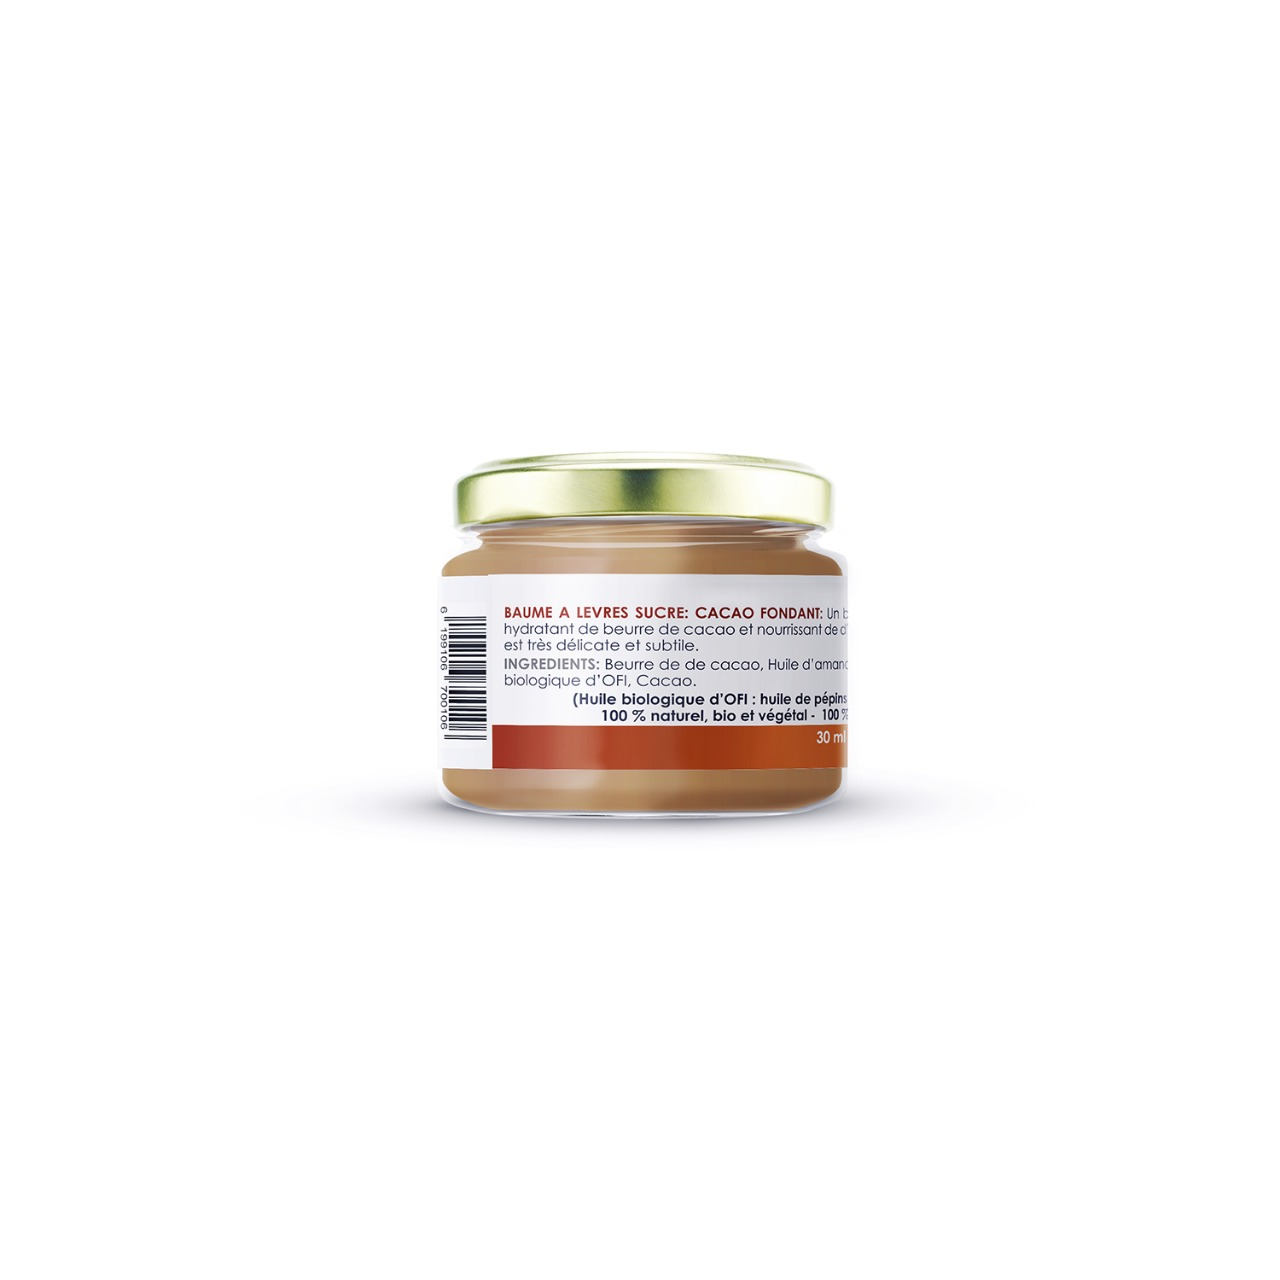 SWEET LIP BALM - MELTING COCO 2 - Nakawa Bio Tunisia